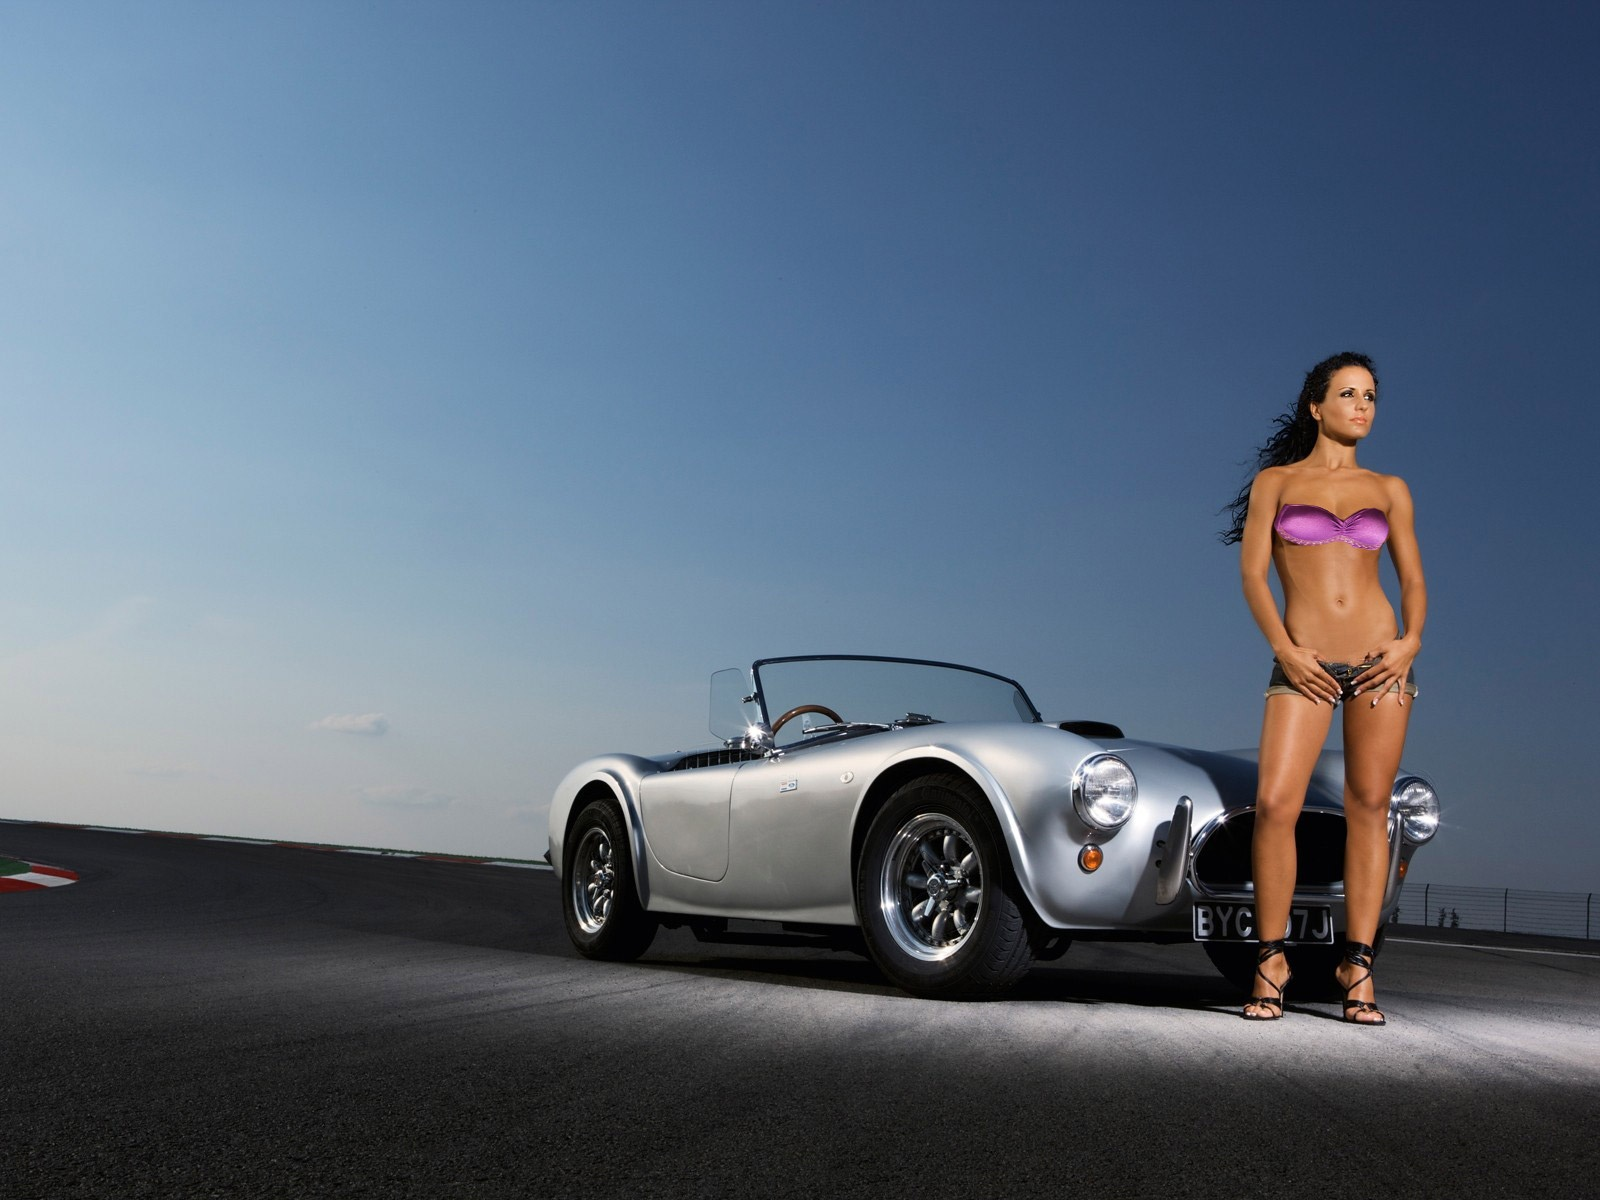 Daniela Golm sexy brunette lingerie model and ford shelby